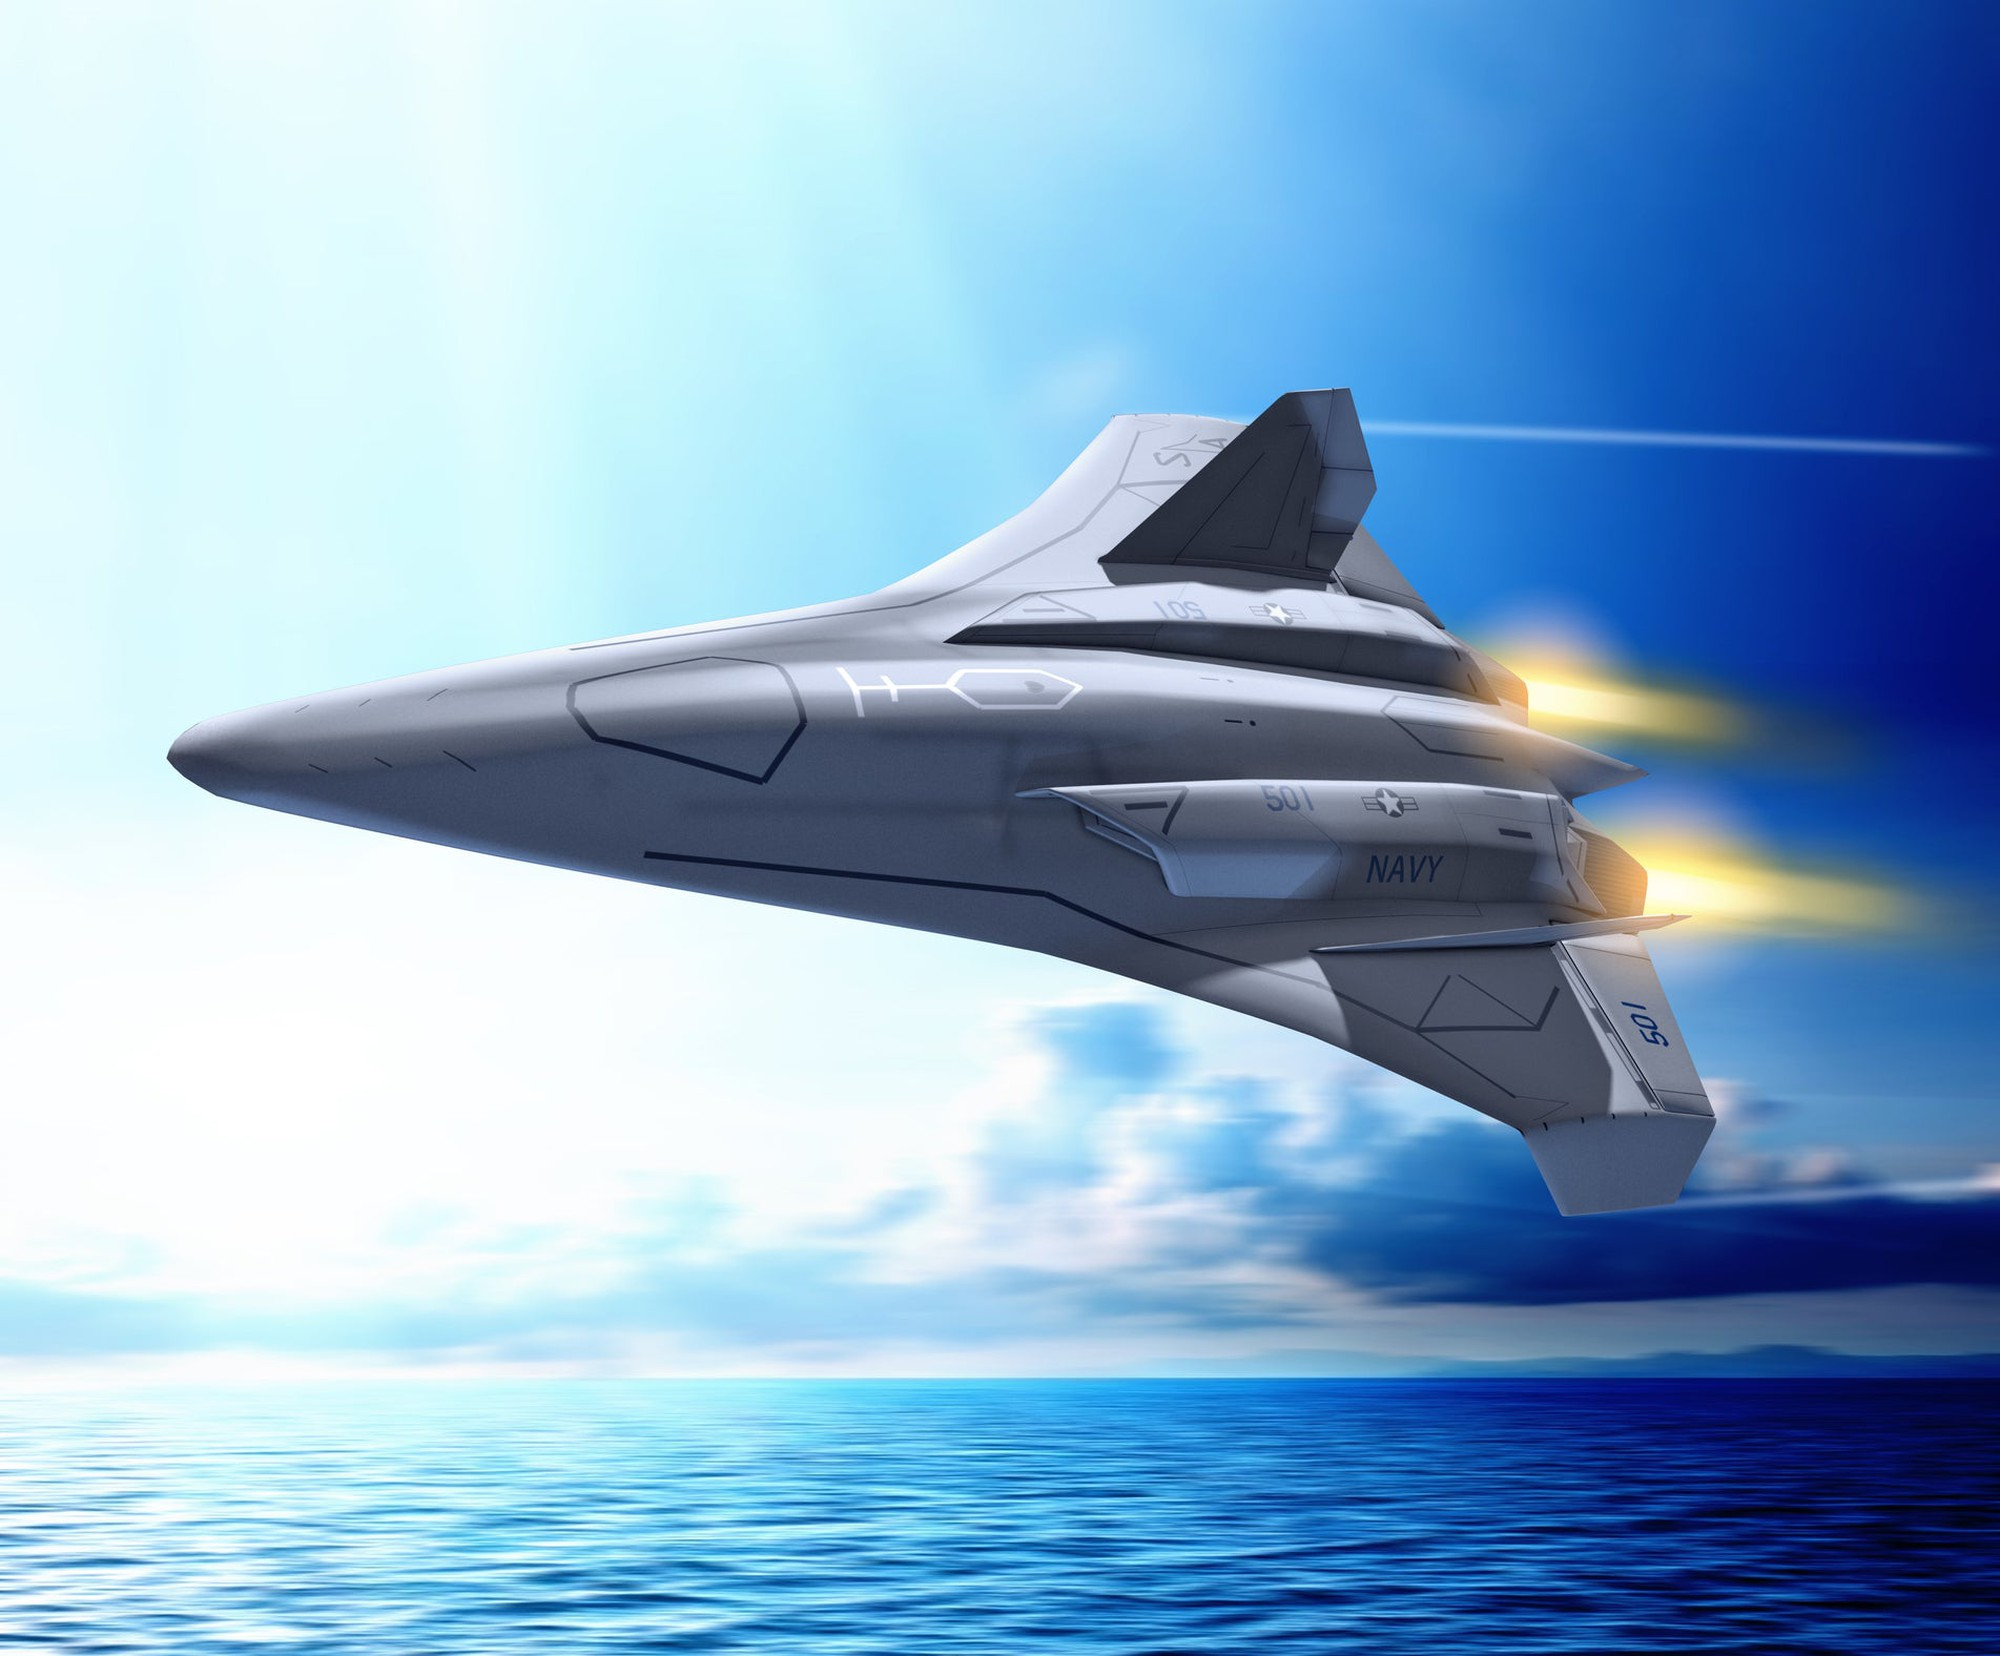 Artist Concept Of What A Future Military Fighter Plane Might Look Like Image Source Getty Images